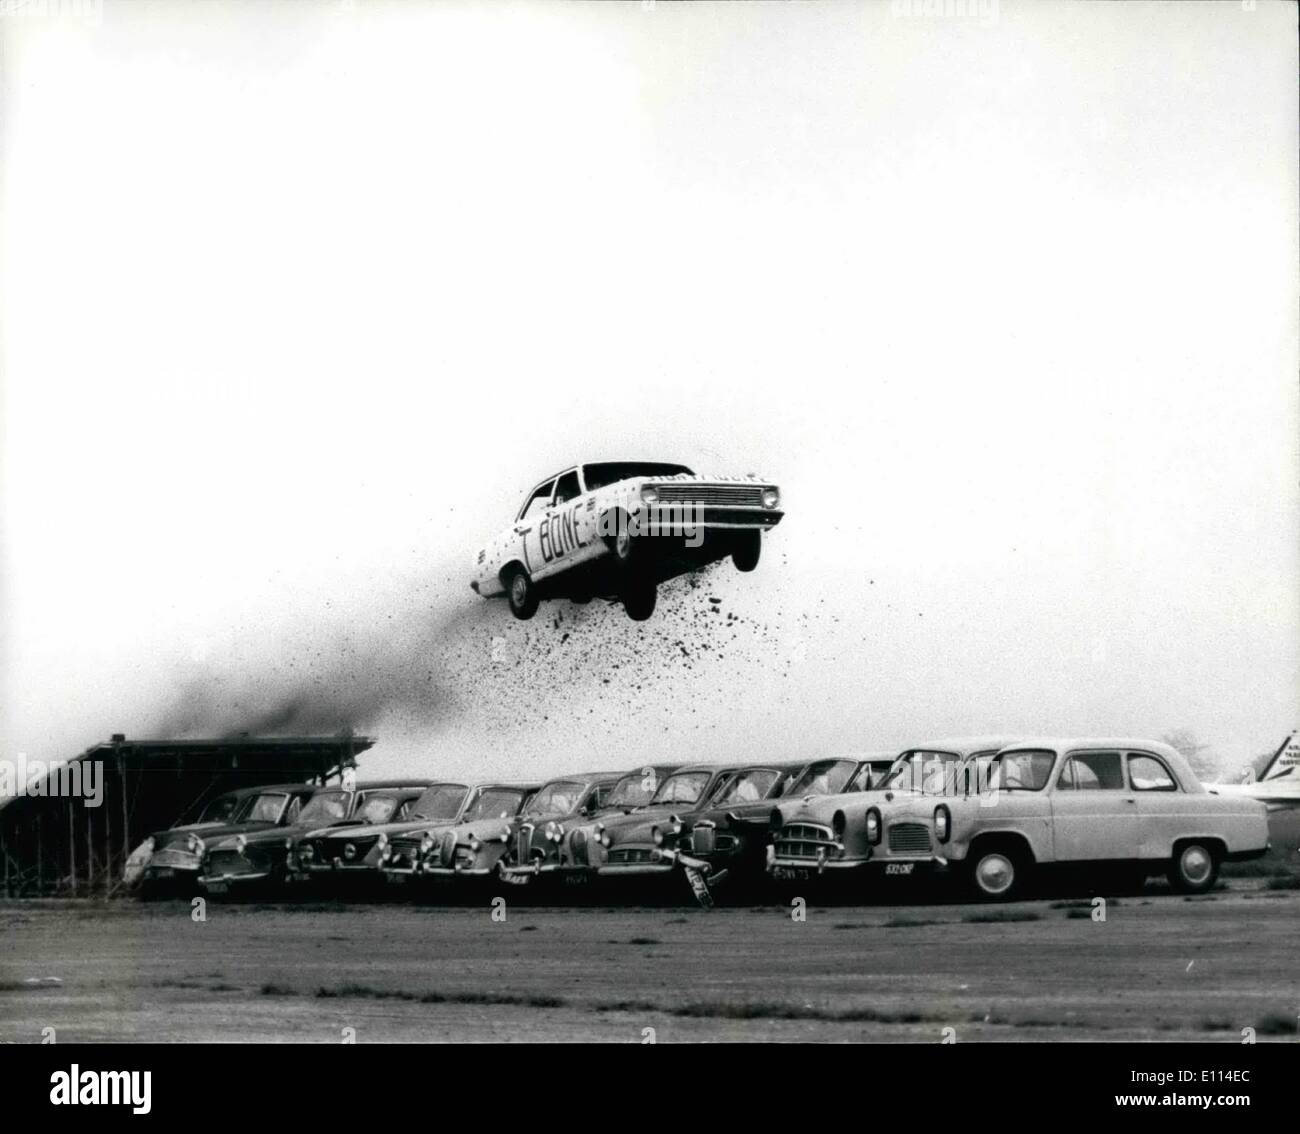 Nov. 11, 1975 - Stunt Driver Keith T-Bone Bowen Jumps Over 13 Parked Cars to Break the World Record. Stunt driver Keith T-Bon - Stock Image